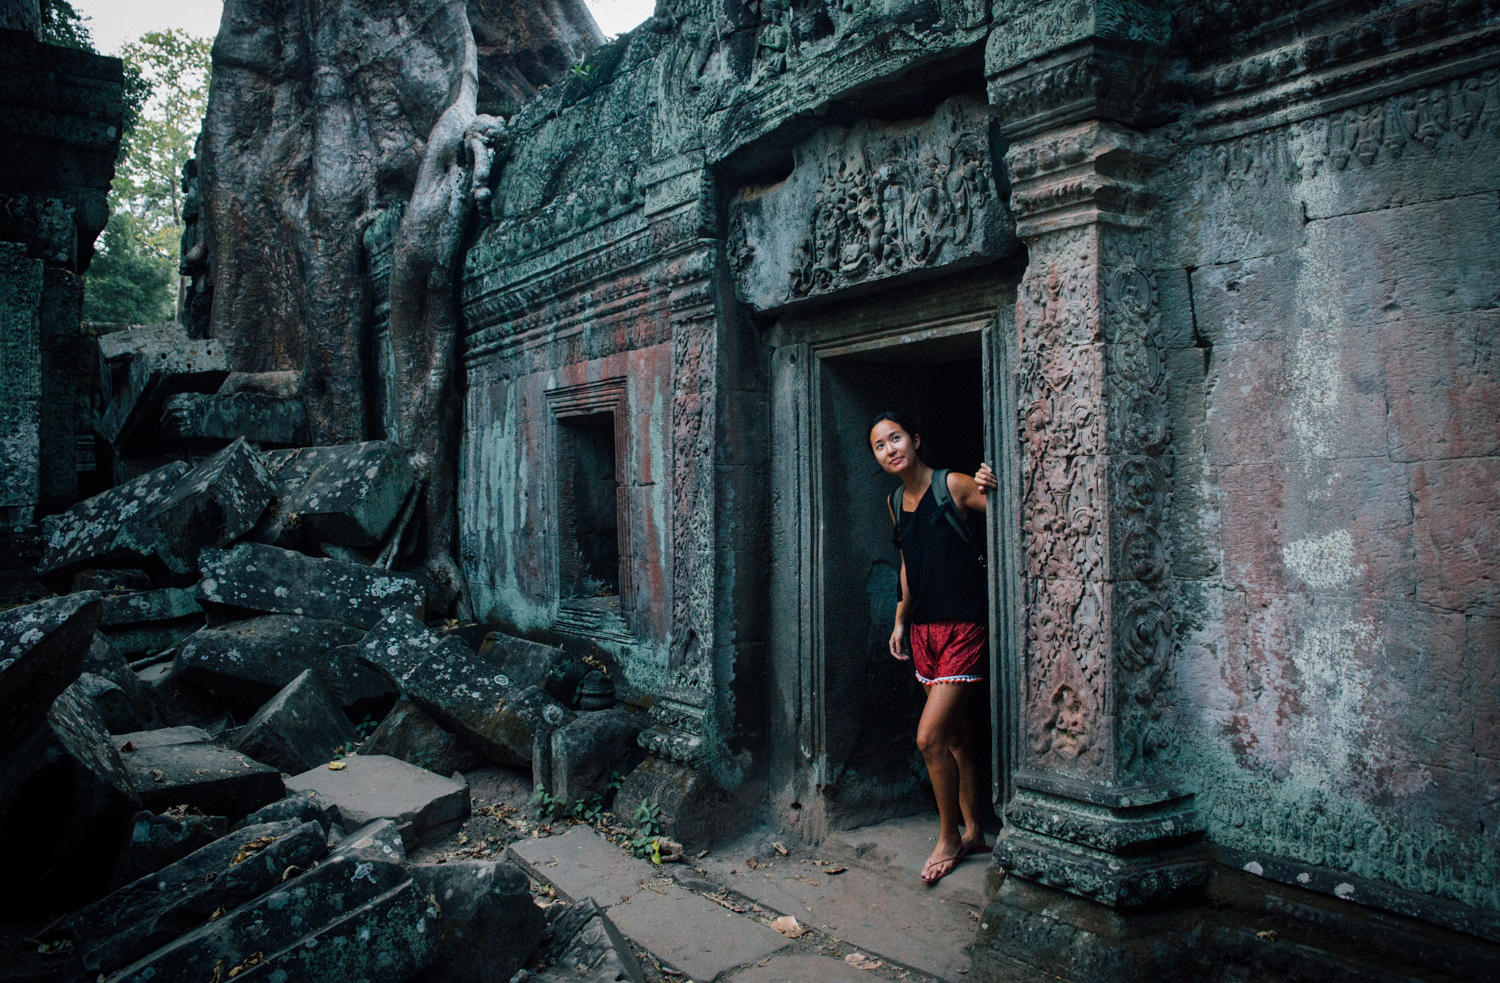 Exploring the 'Tomb Raider' temple in Siem Reap, Cambodia